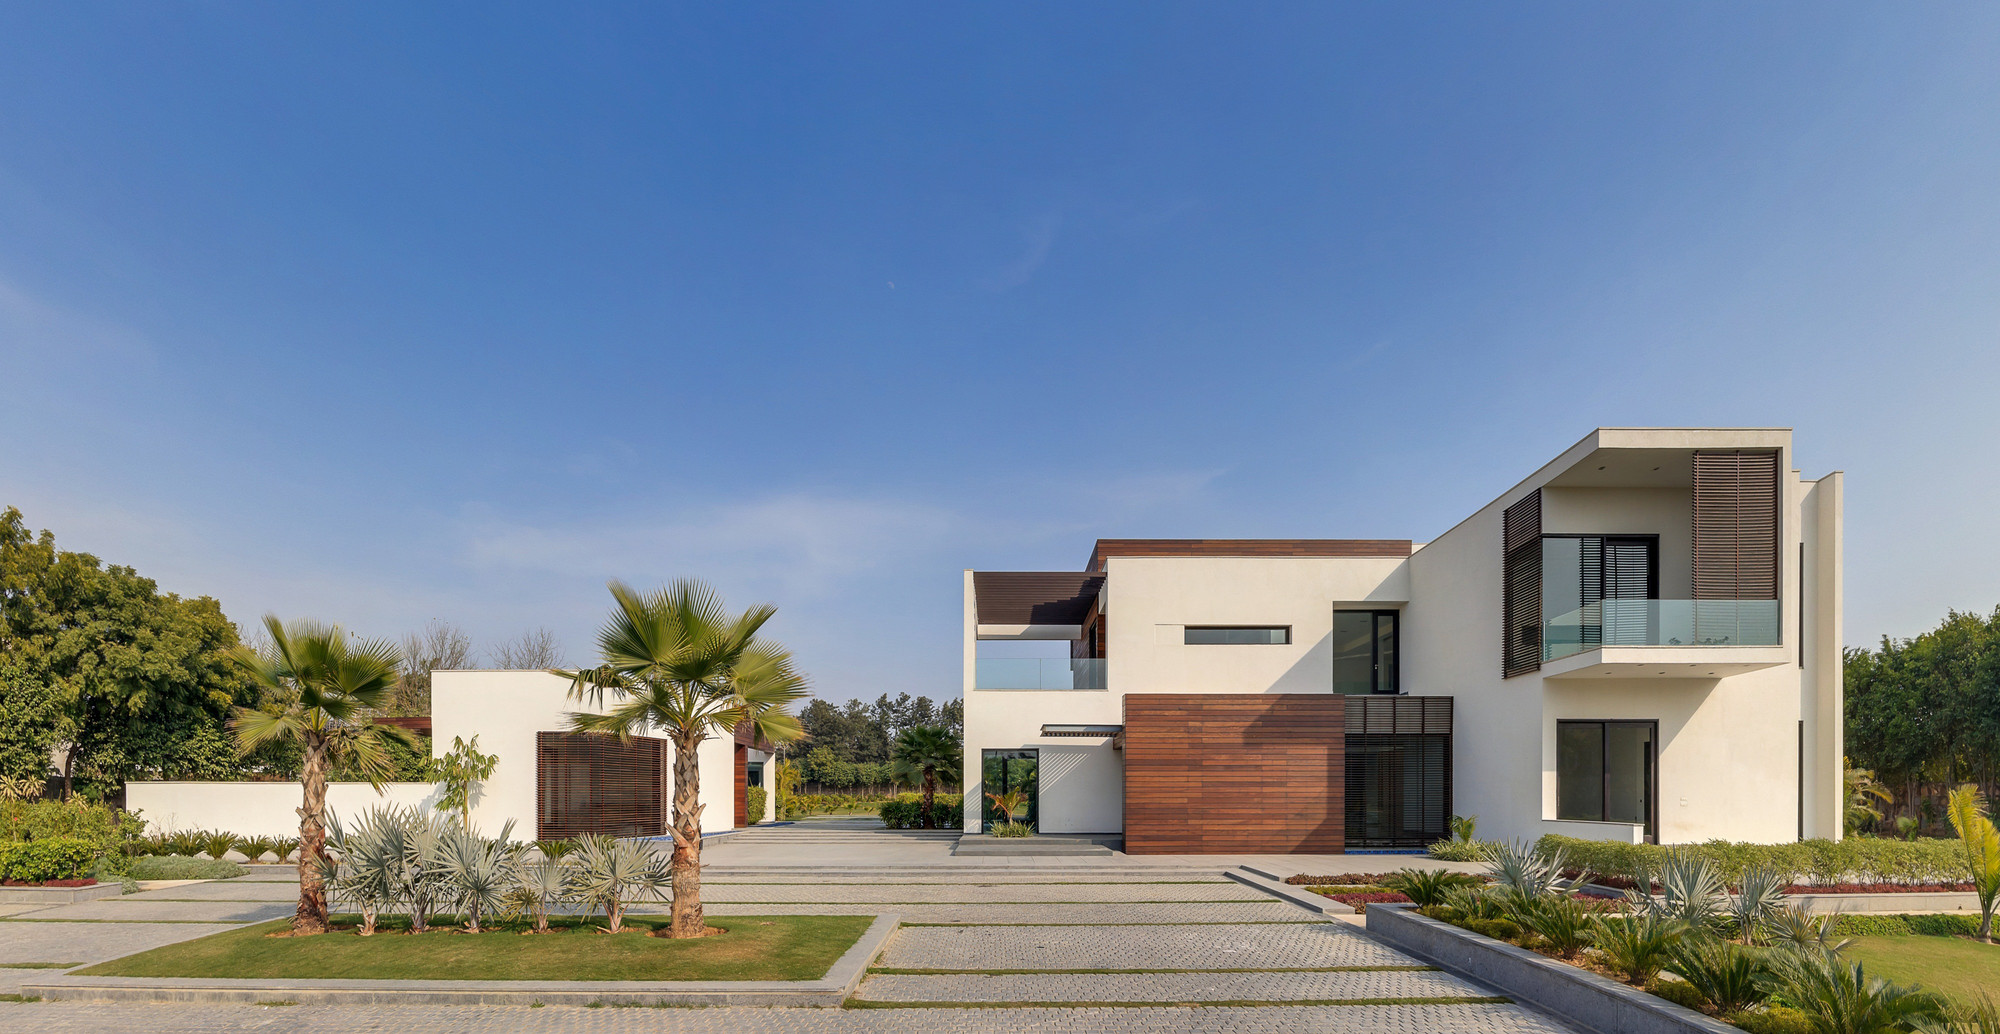 F3 farmhouse dada partners archdaily for Architecture design for home in delhi